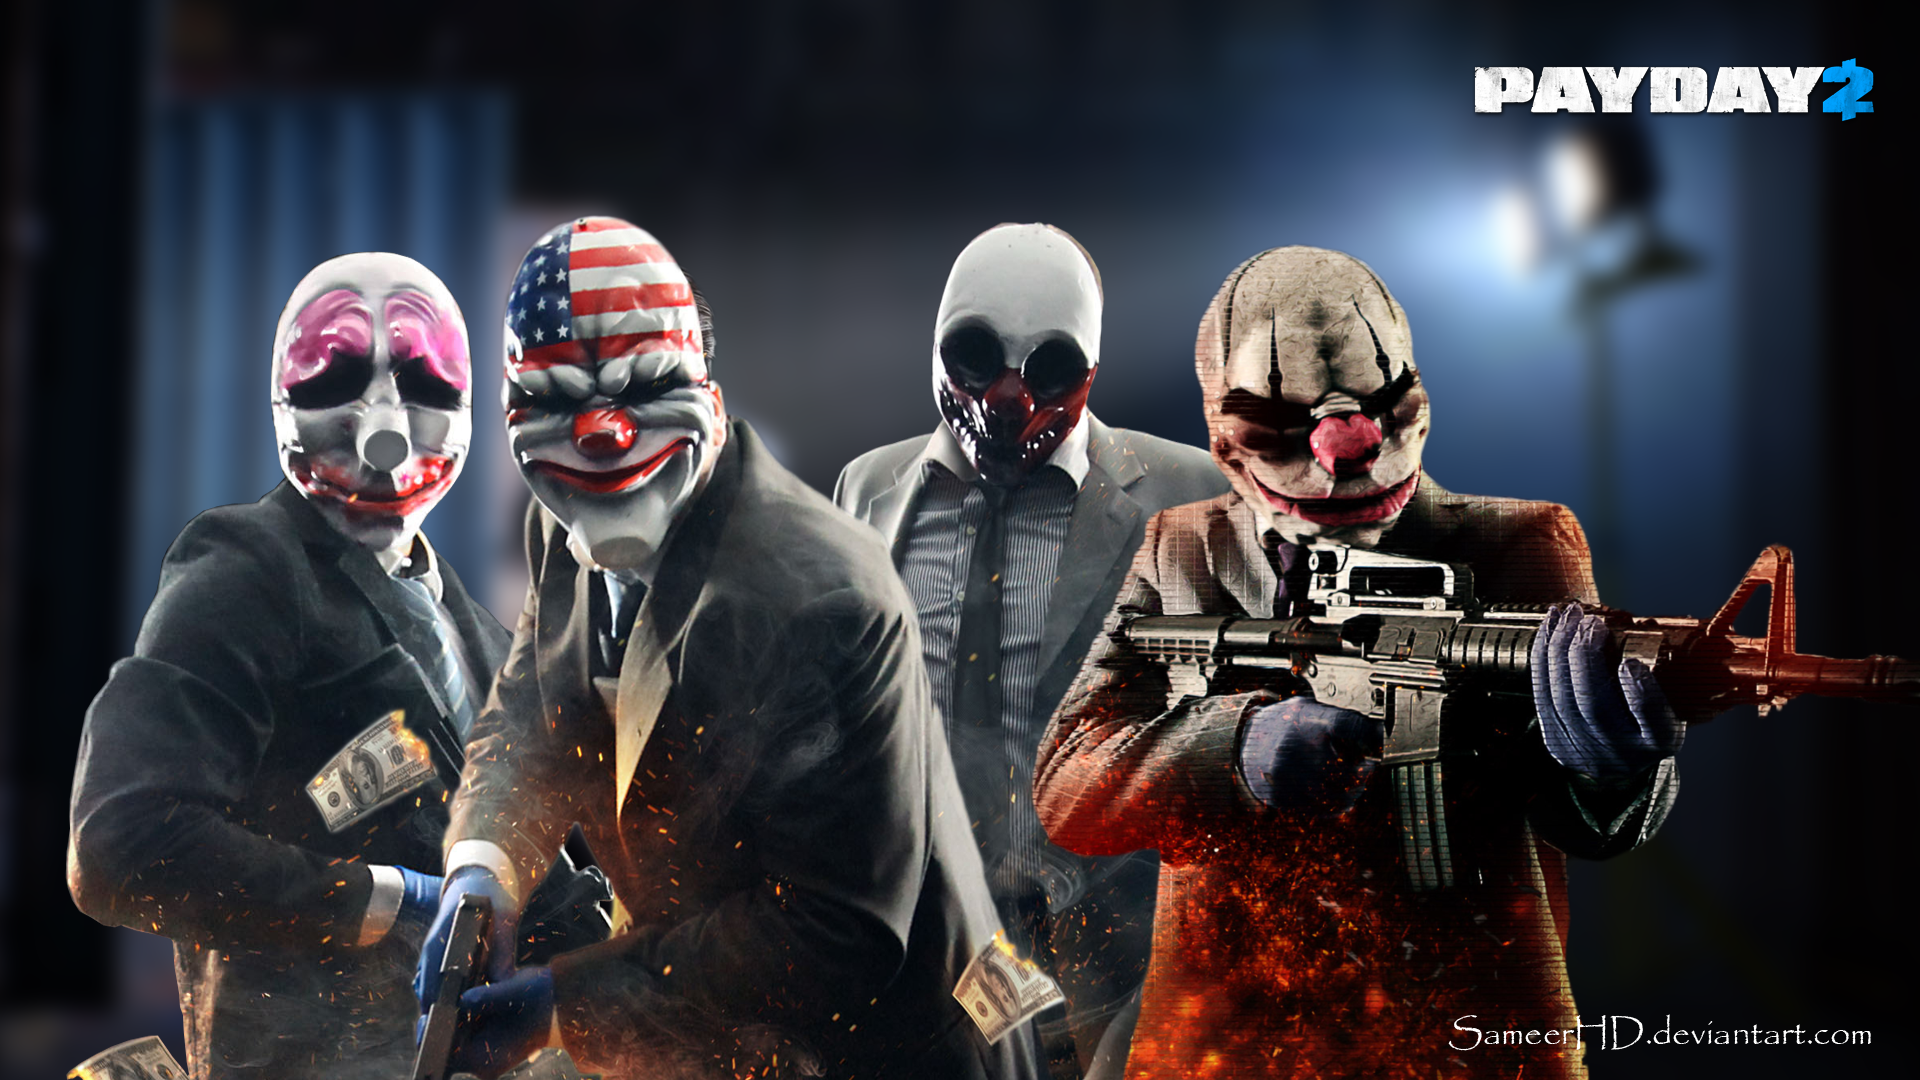 Payday 2 Gang Wallpaper by SameerHD 1920x1080